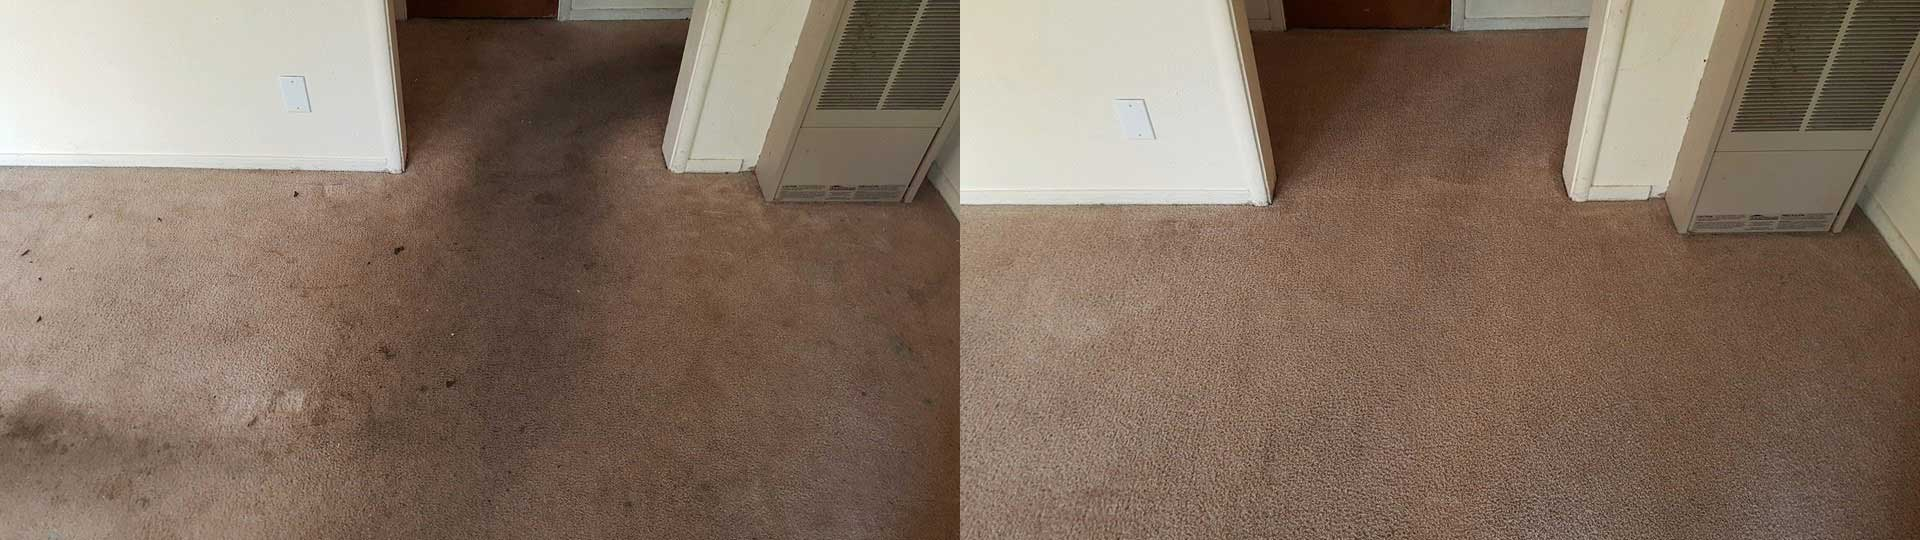 carpet cleaning Elk Grove CA